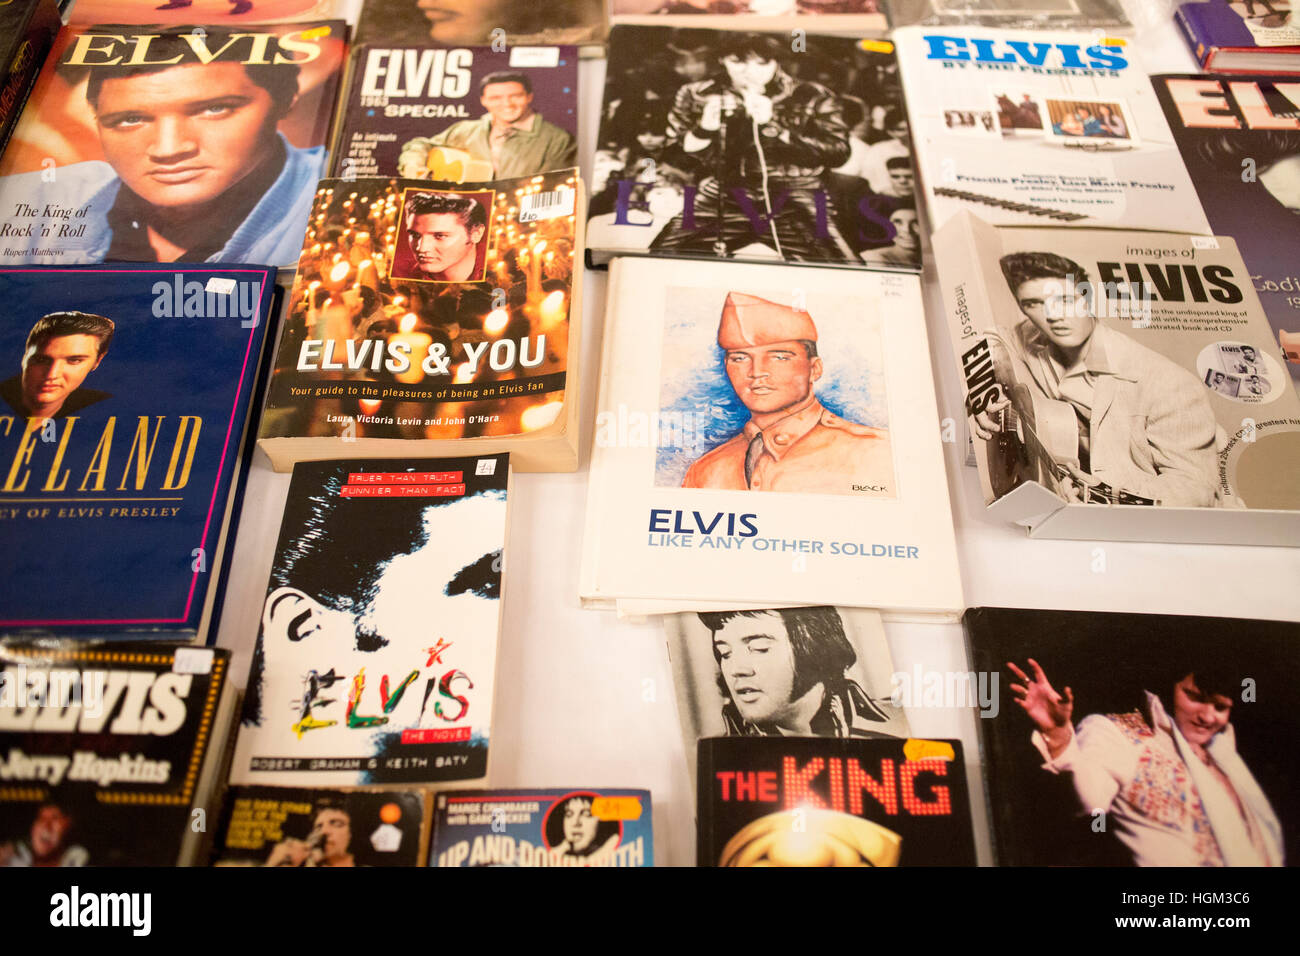 Elvis tribute contest in Birmingham. Books on display at the exhibition about Elvis - Stock Image